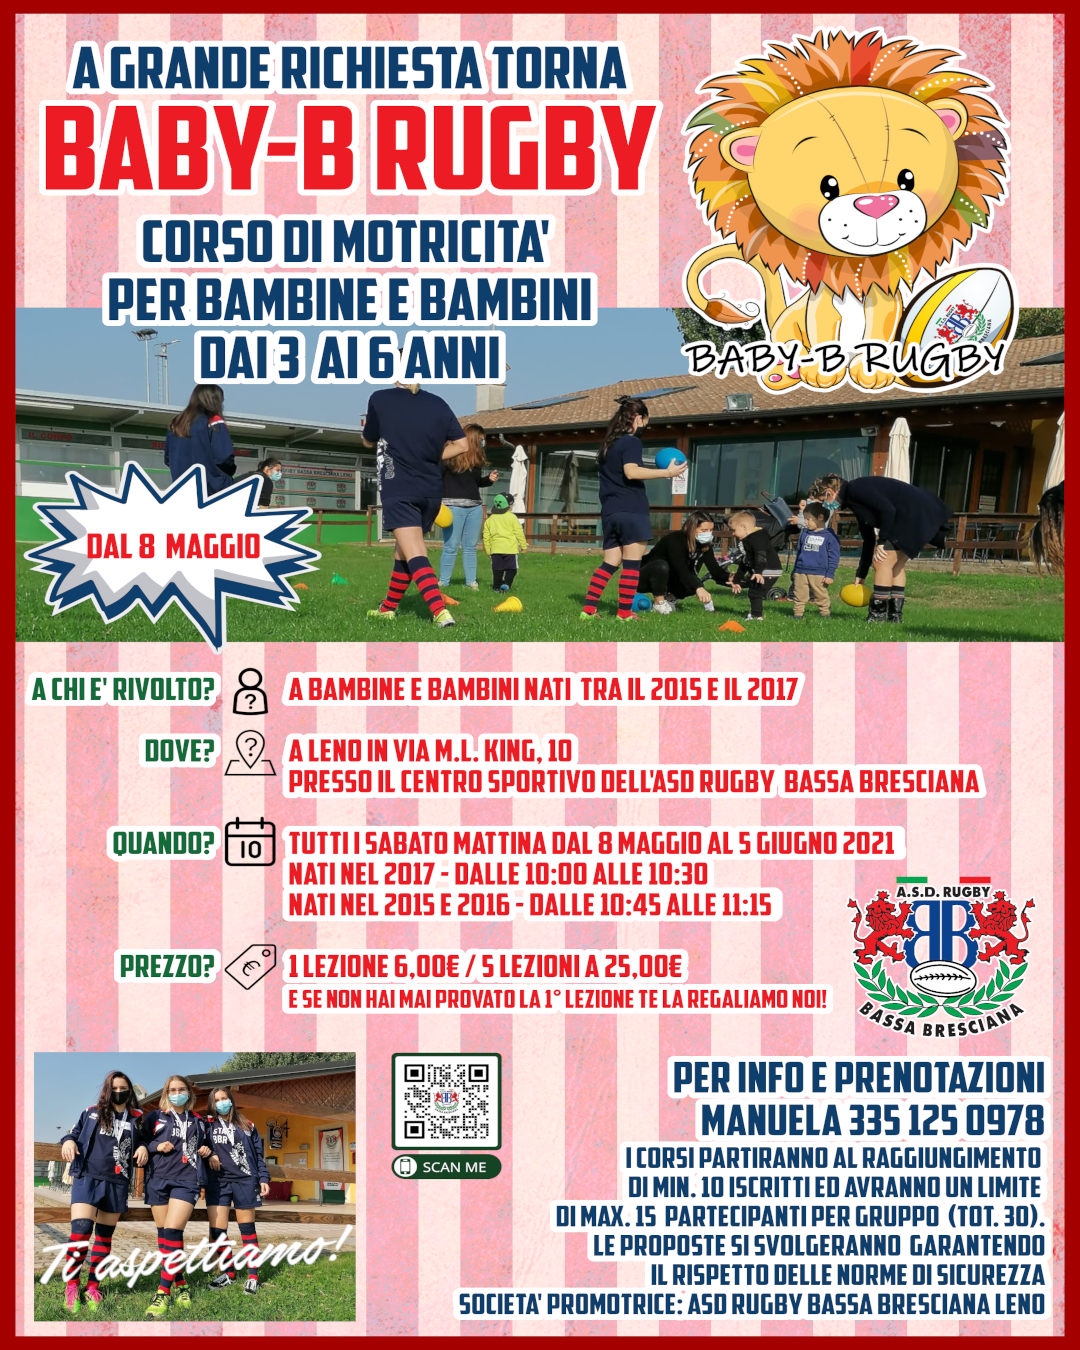 BABY-B RUGBY